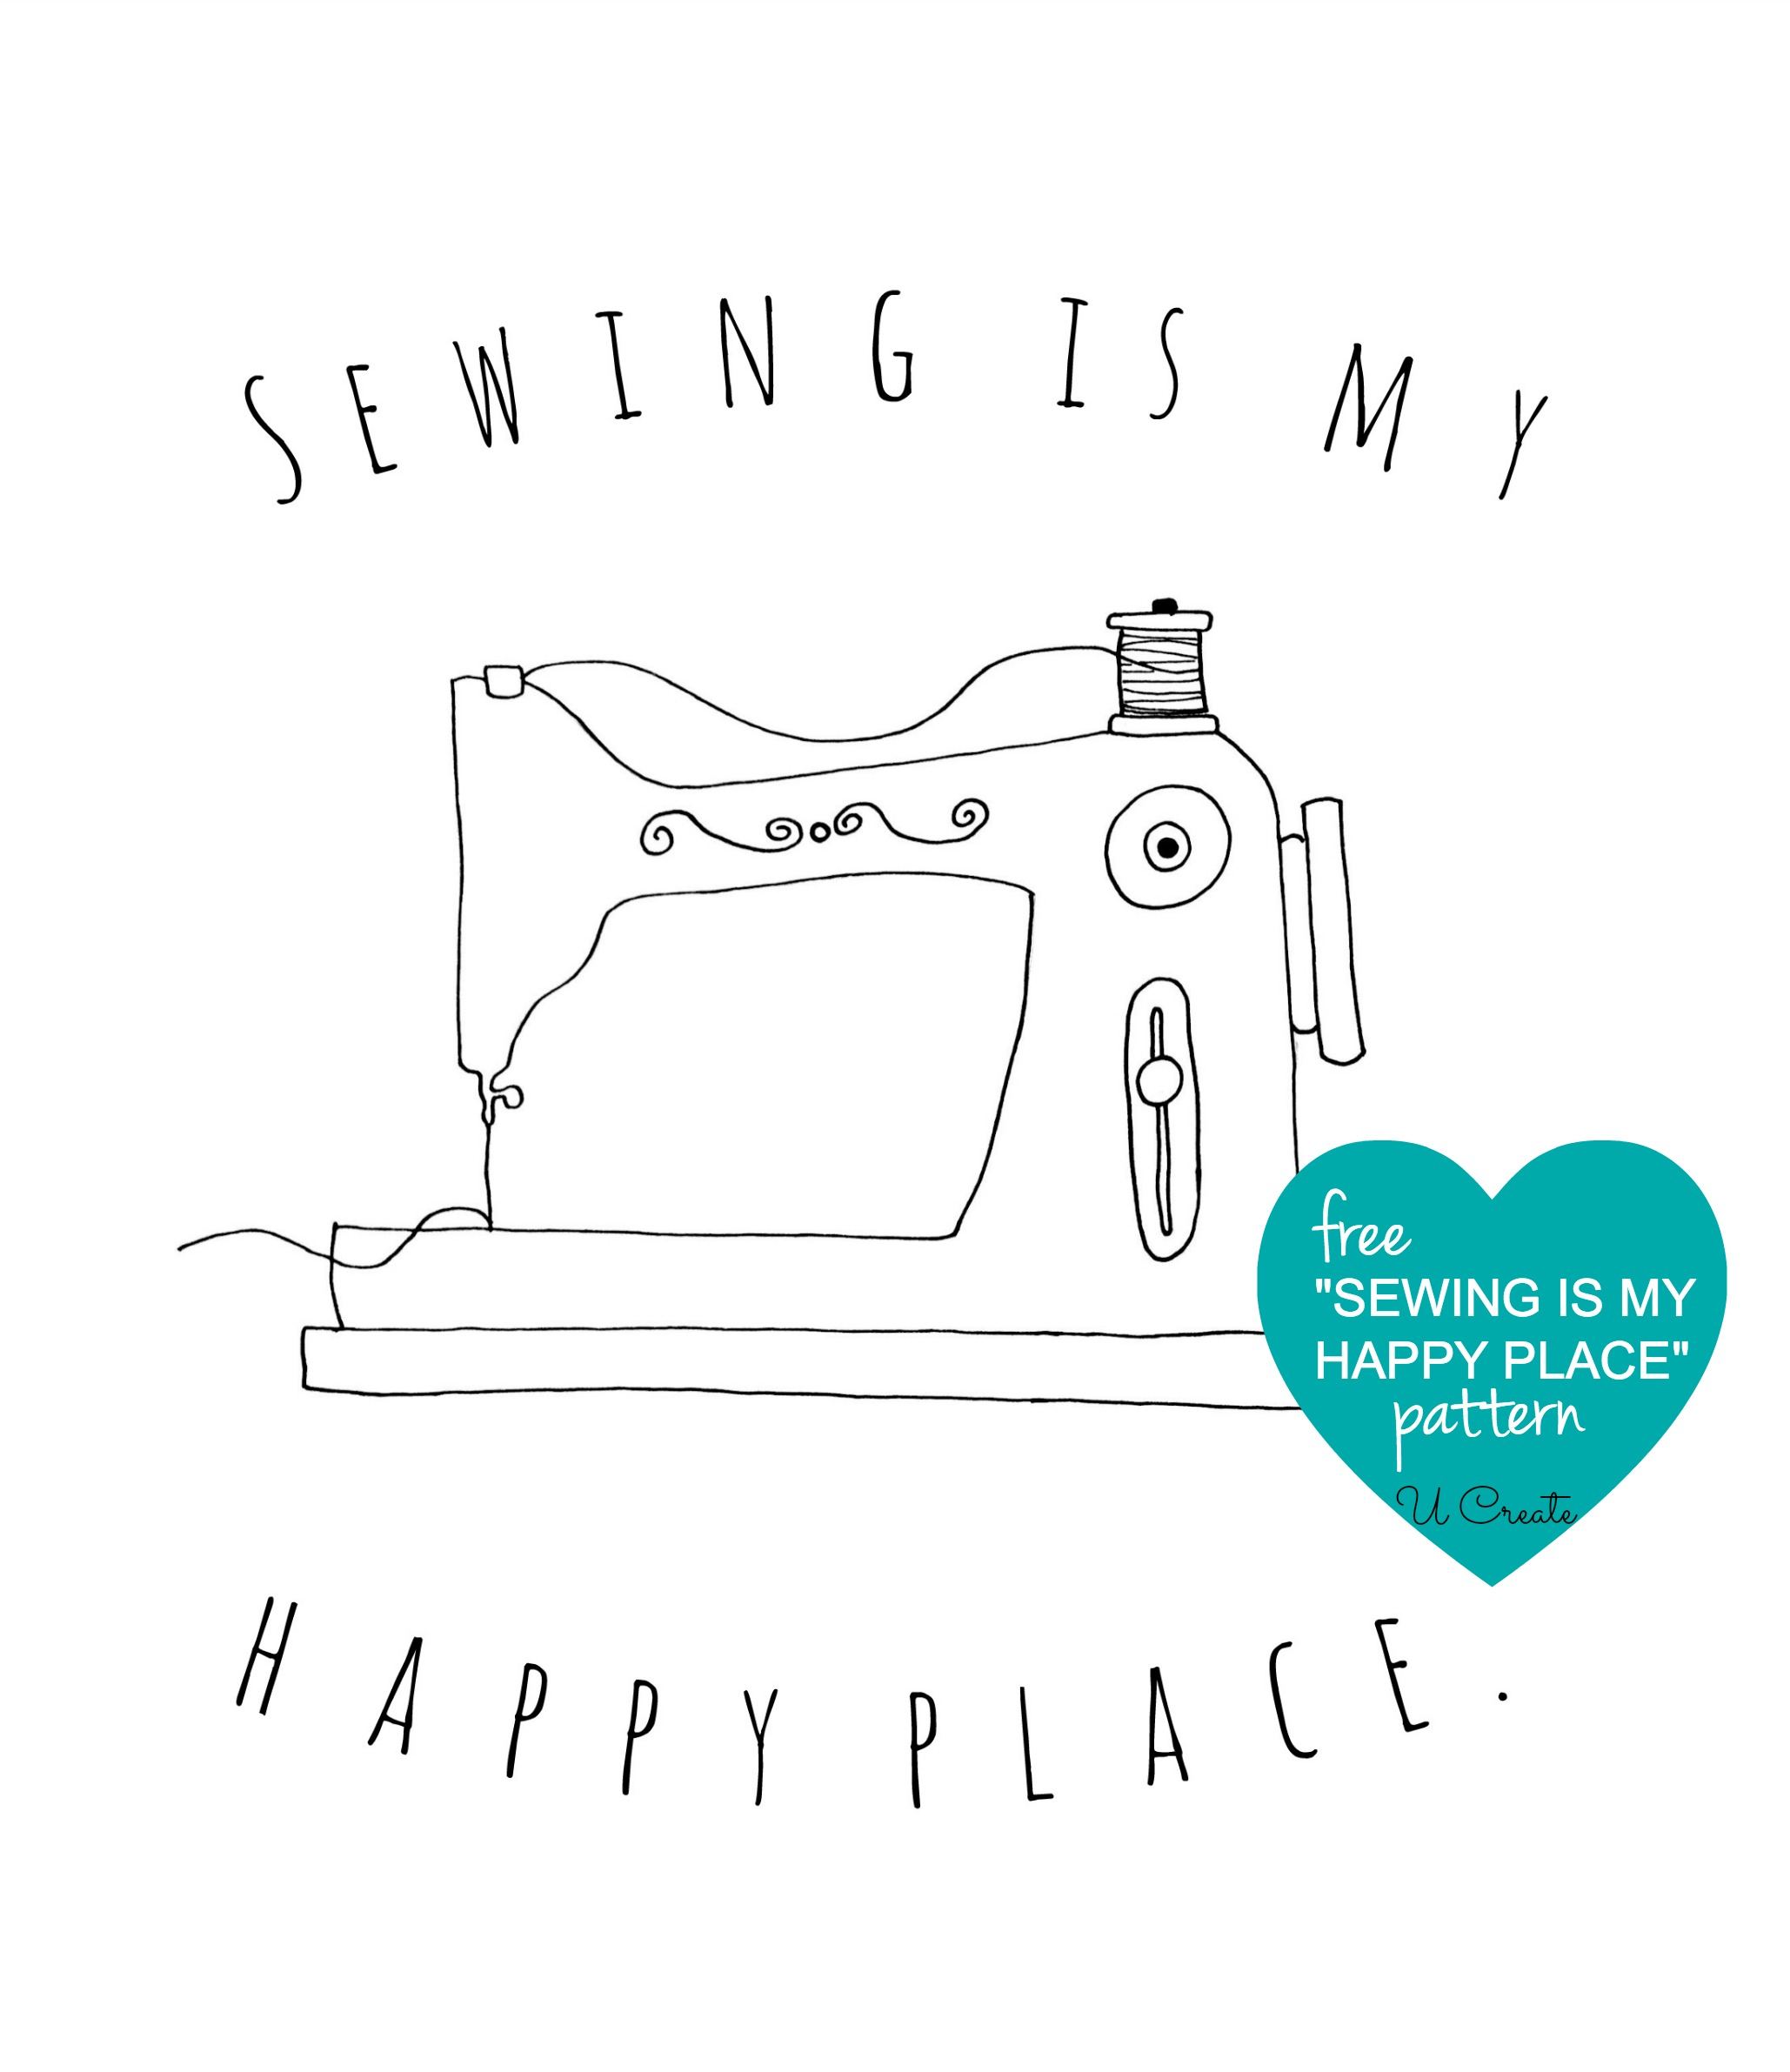 Sewing is My Happy Place stitchable pattern